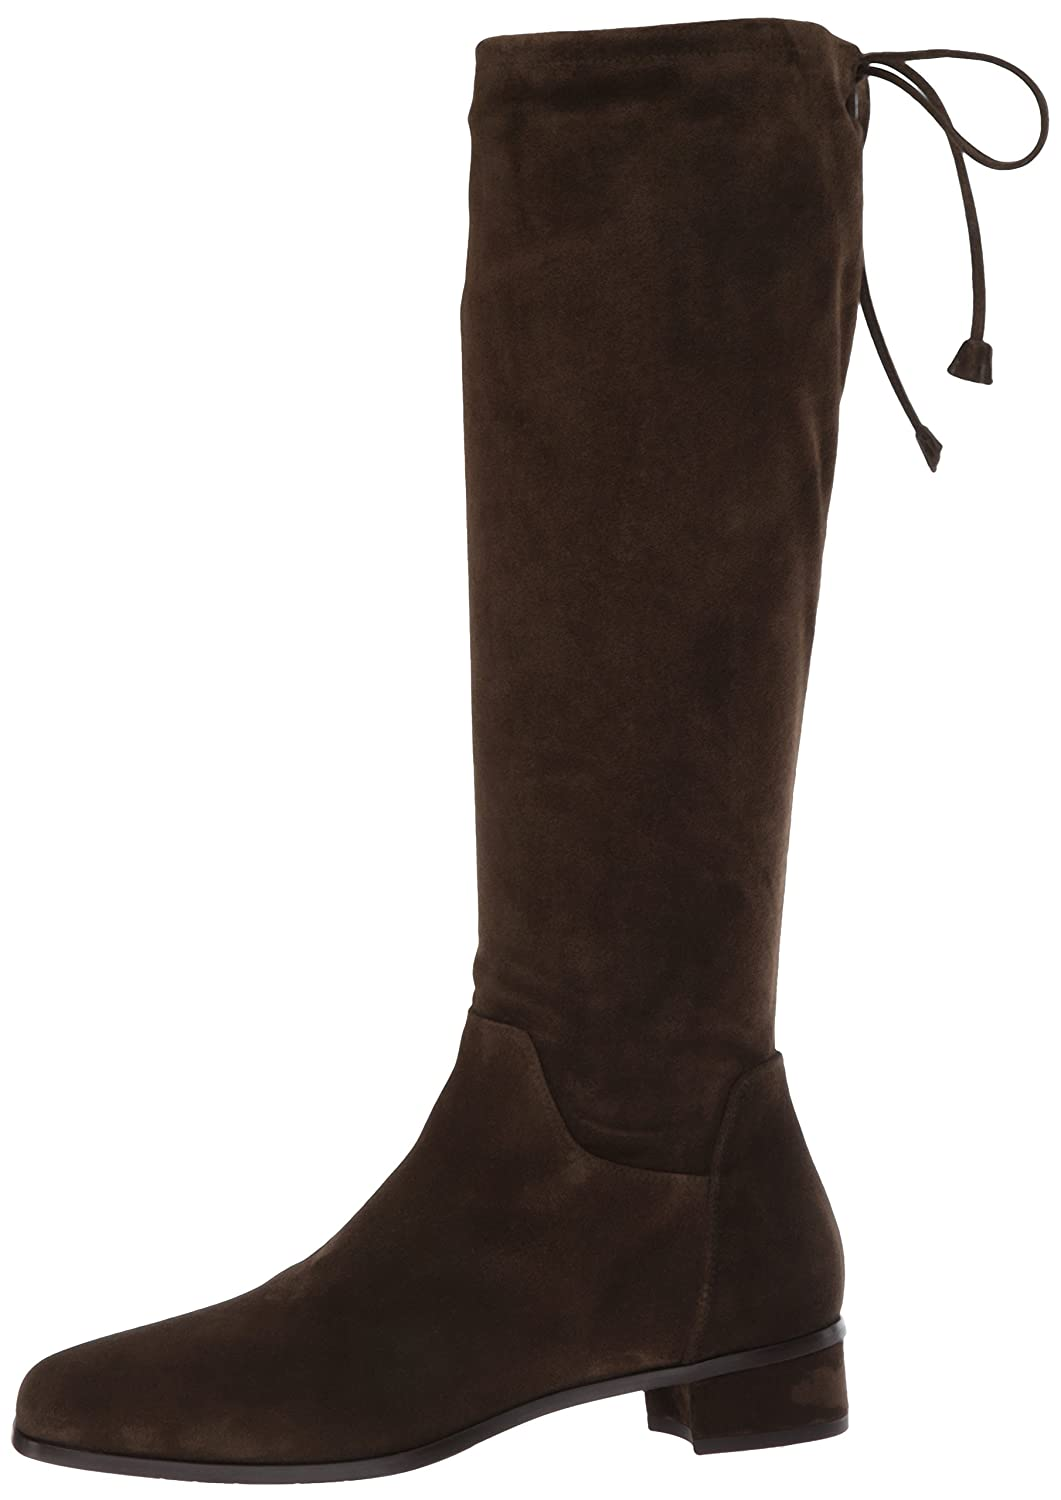 Aquatalia The Women's Lisandra Suede Over The Aquatalia Knee Boot B06WVBFXBC 6 B(M) US|Olive 64af4f